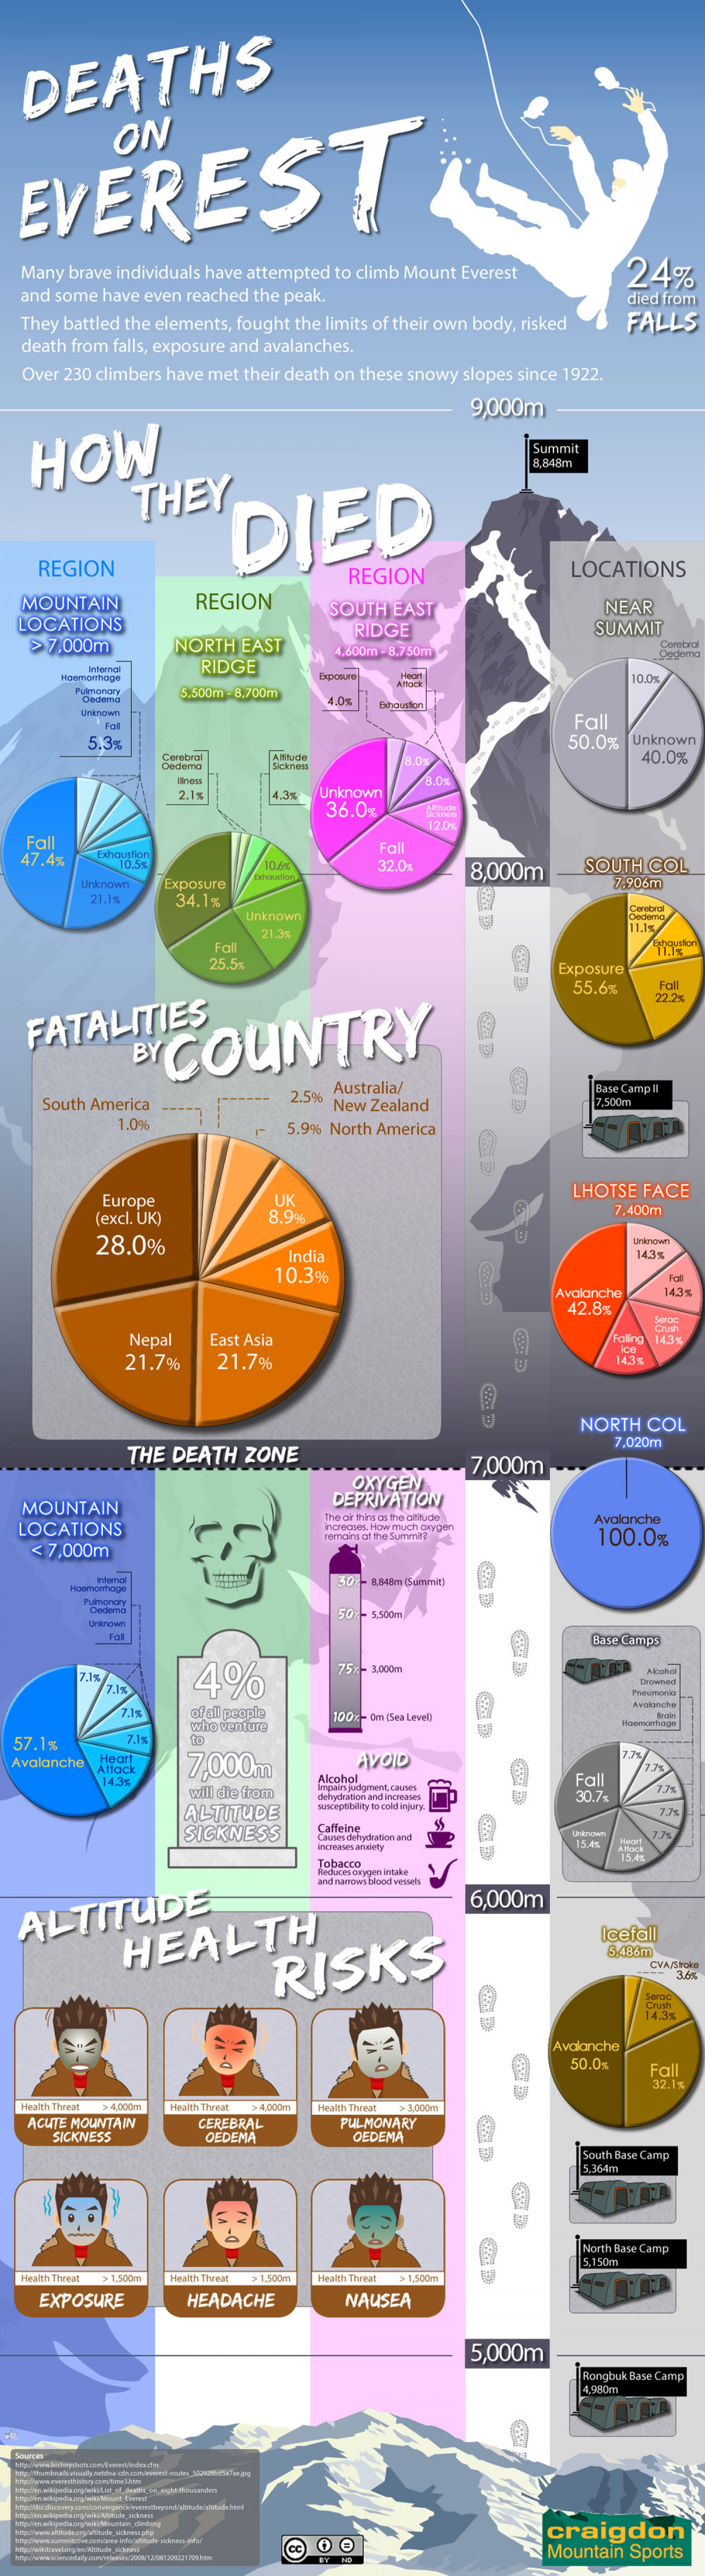 Deaths on Everest Infographic